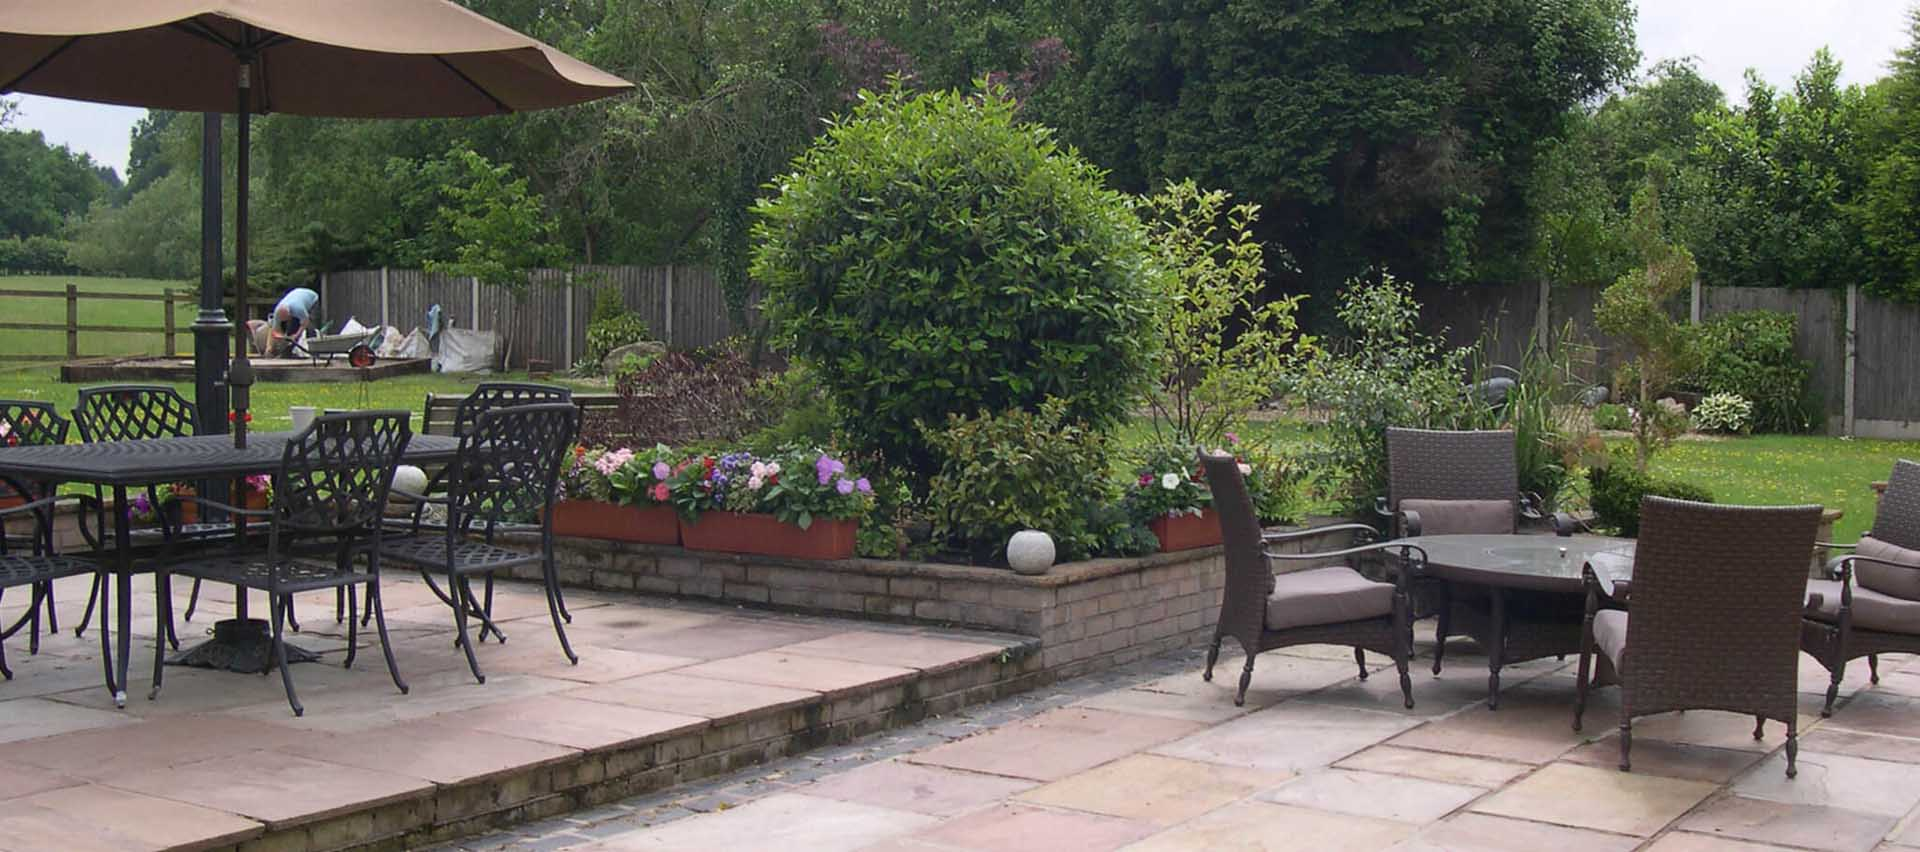 Landscaping, Paving & Treefelling